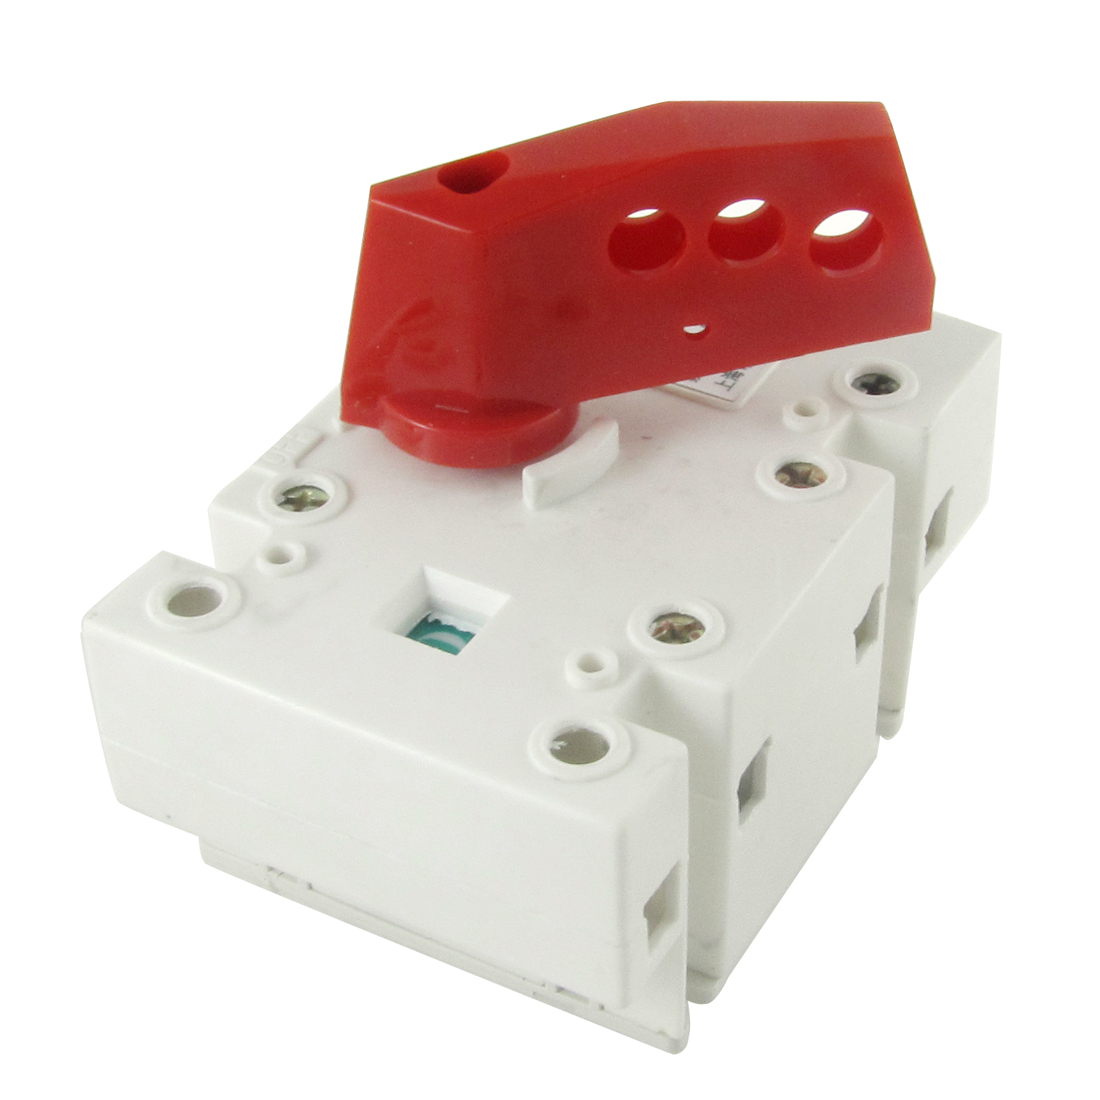 HGL-63/3 AC 380V 63A 3 Pole Isolation Disconnect Switch